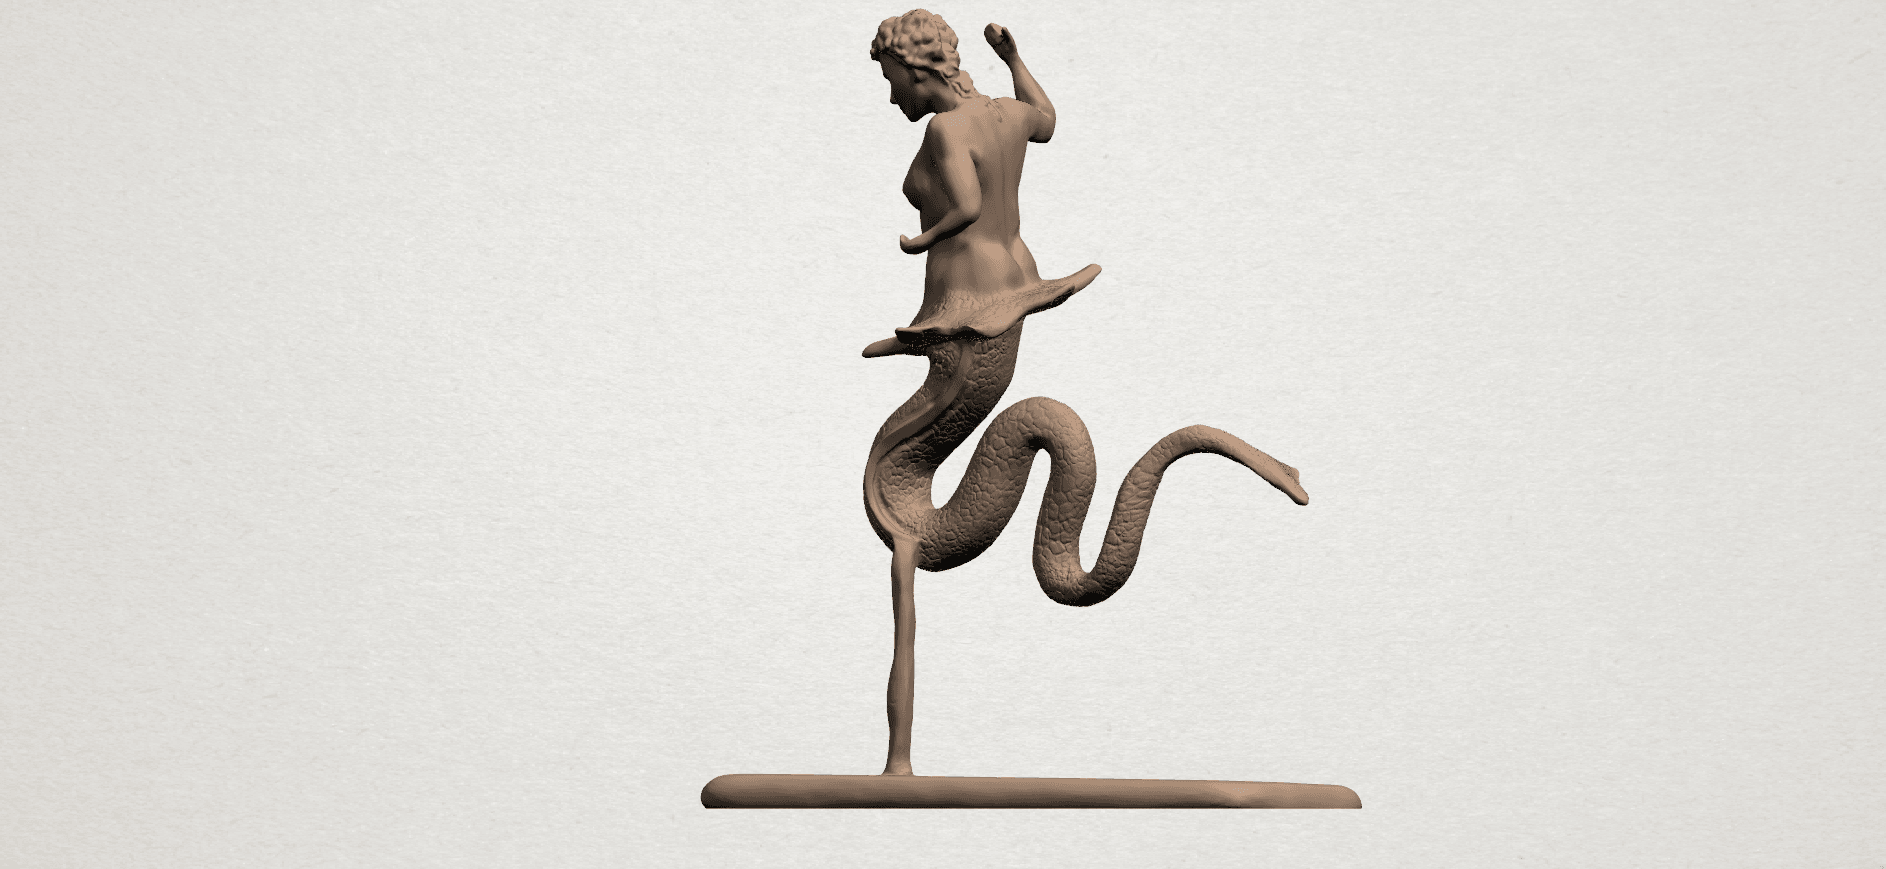 Ophidian A06.png Download free STL file Ophidian • 3D printing template, GeorgesNikkei